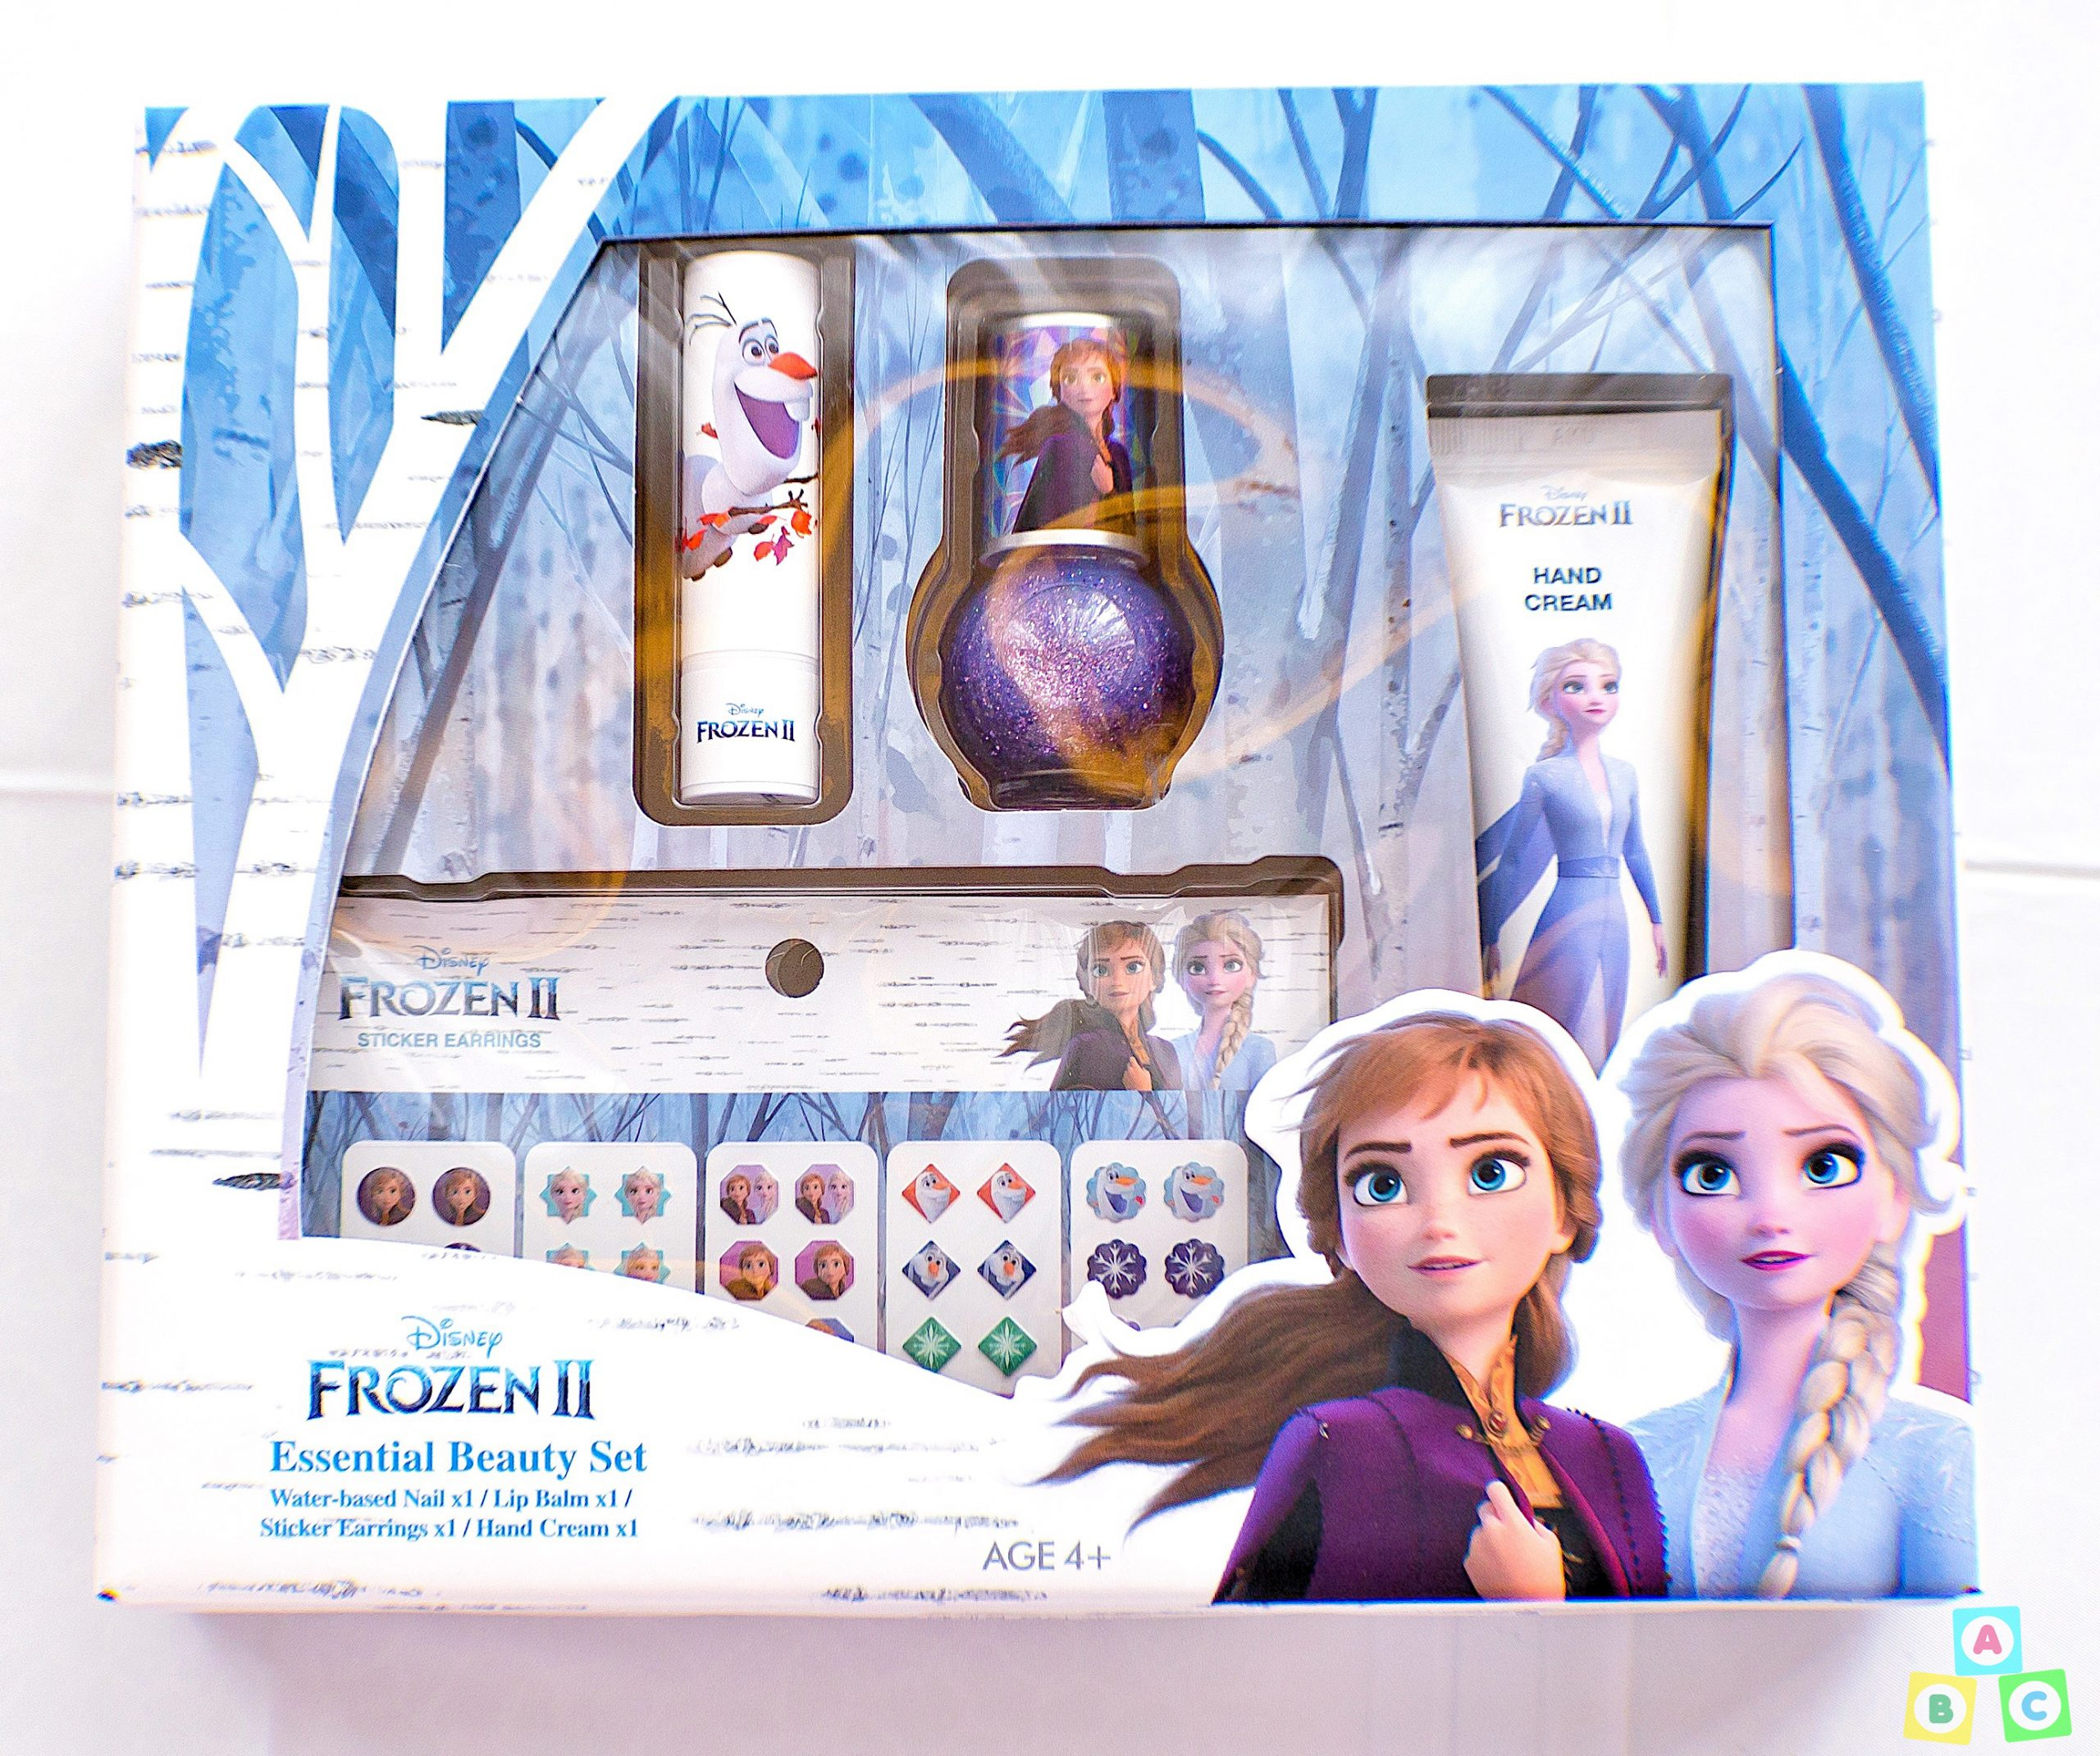 La Memoria Shushu Sassy Frozen 2 Essential Beauty Set